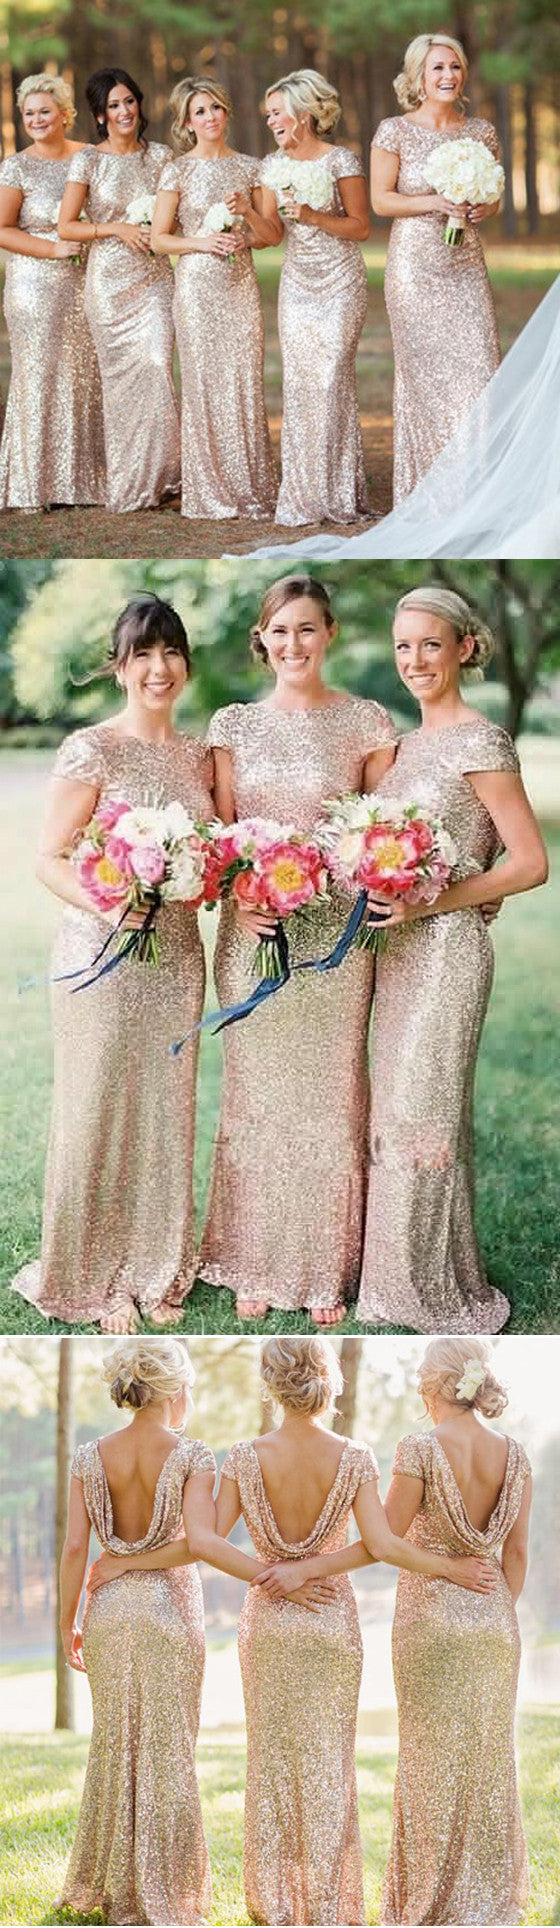 Charming Mermaid Short Sleeve Sequin Long Bridesmaid Dresses, BG51317 - Bubble Gown